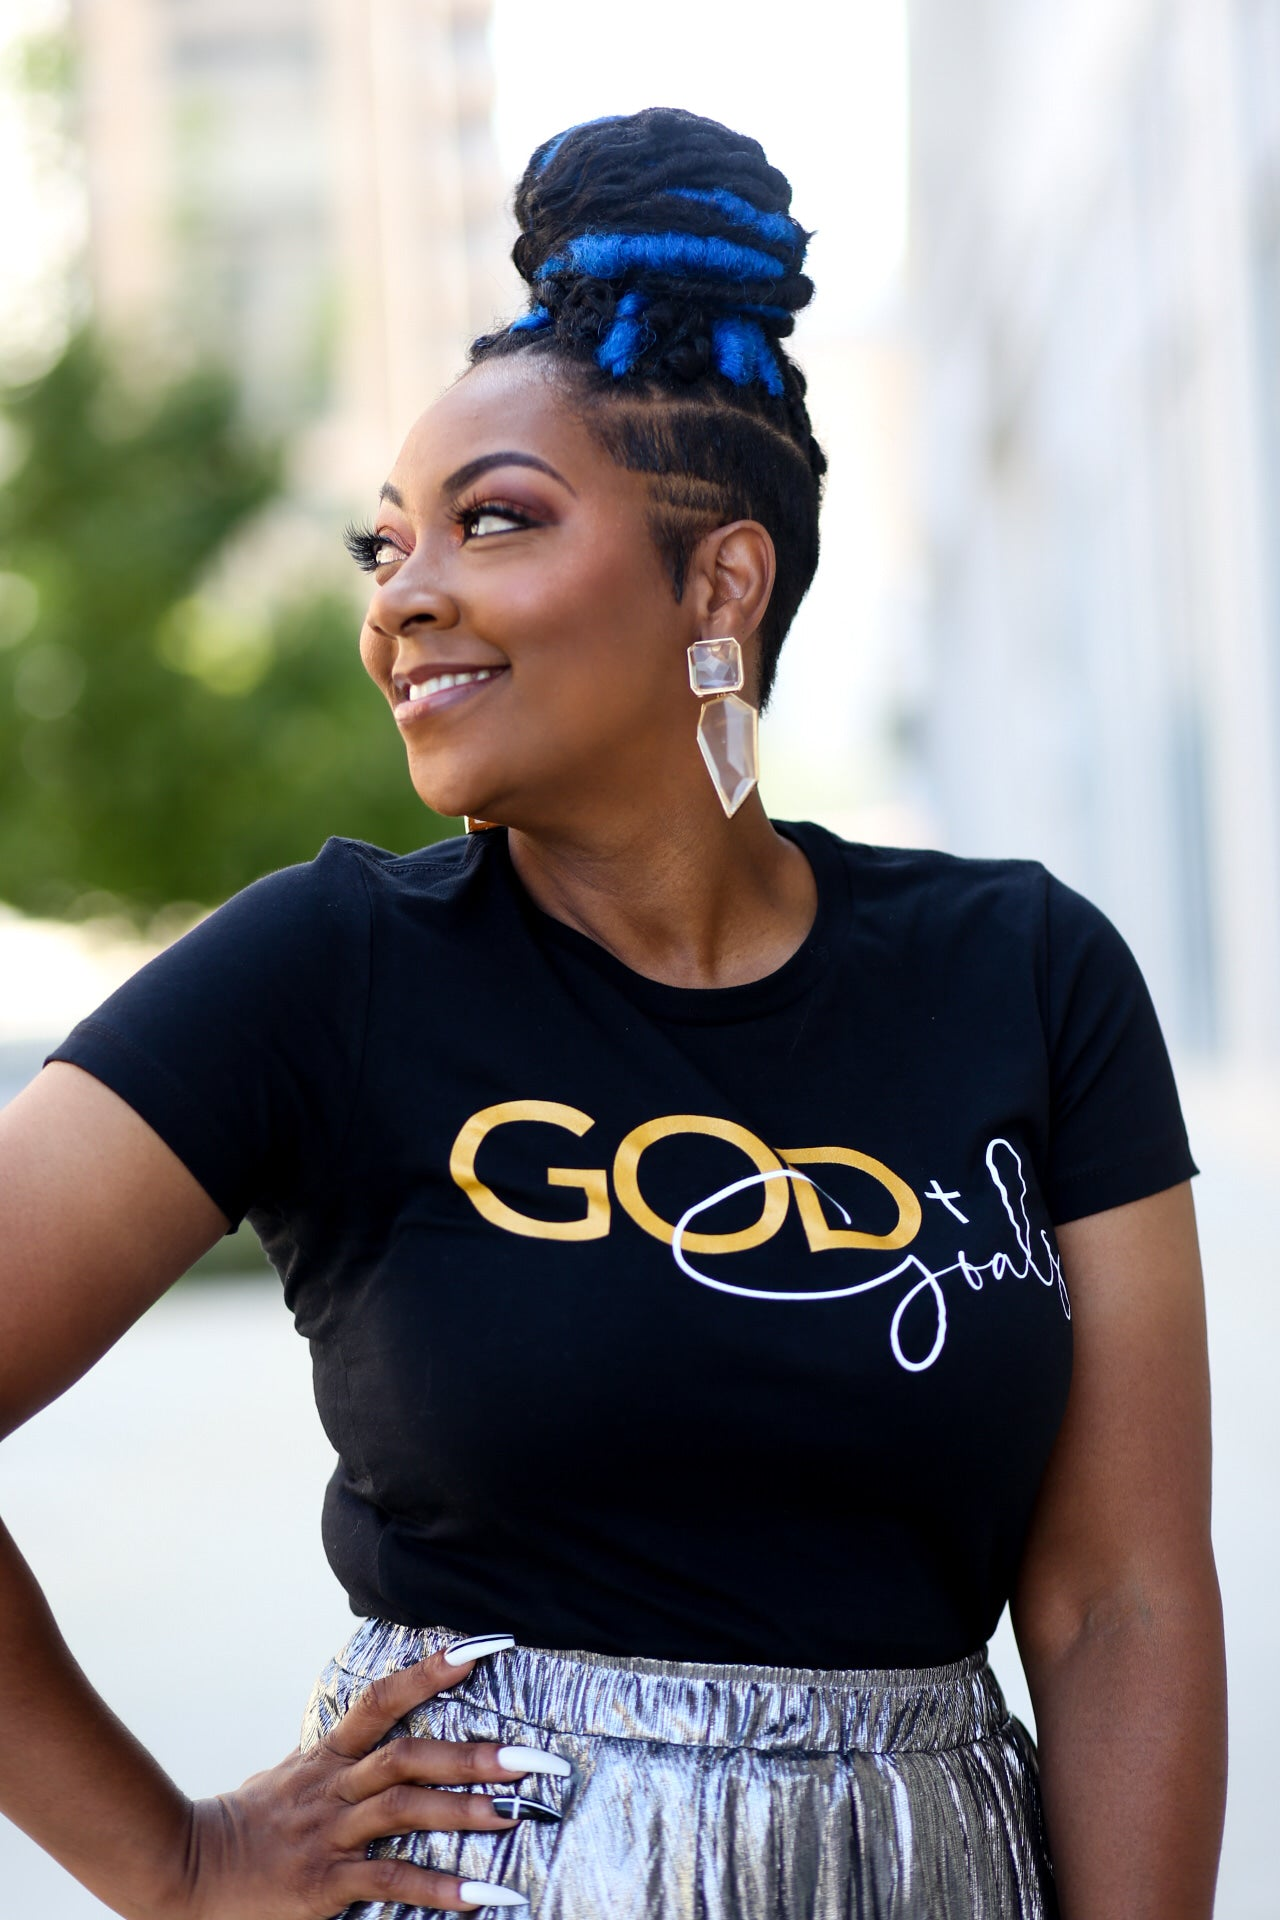 'GOD + Goals Logo' Tee